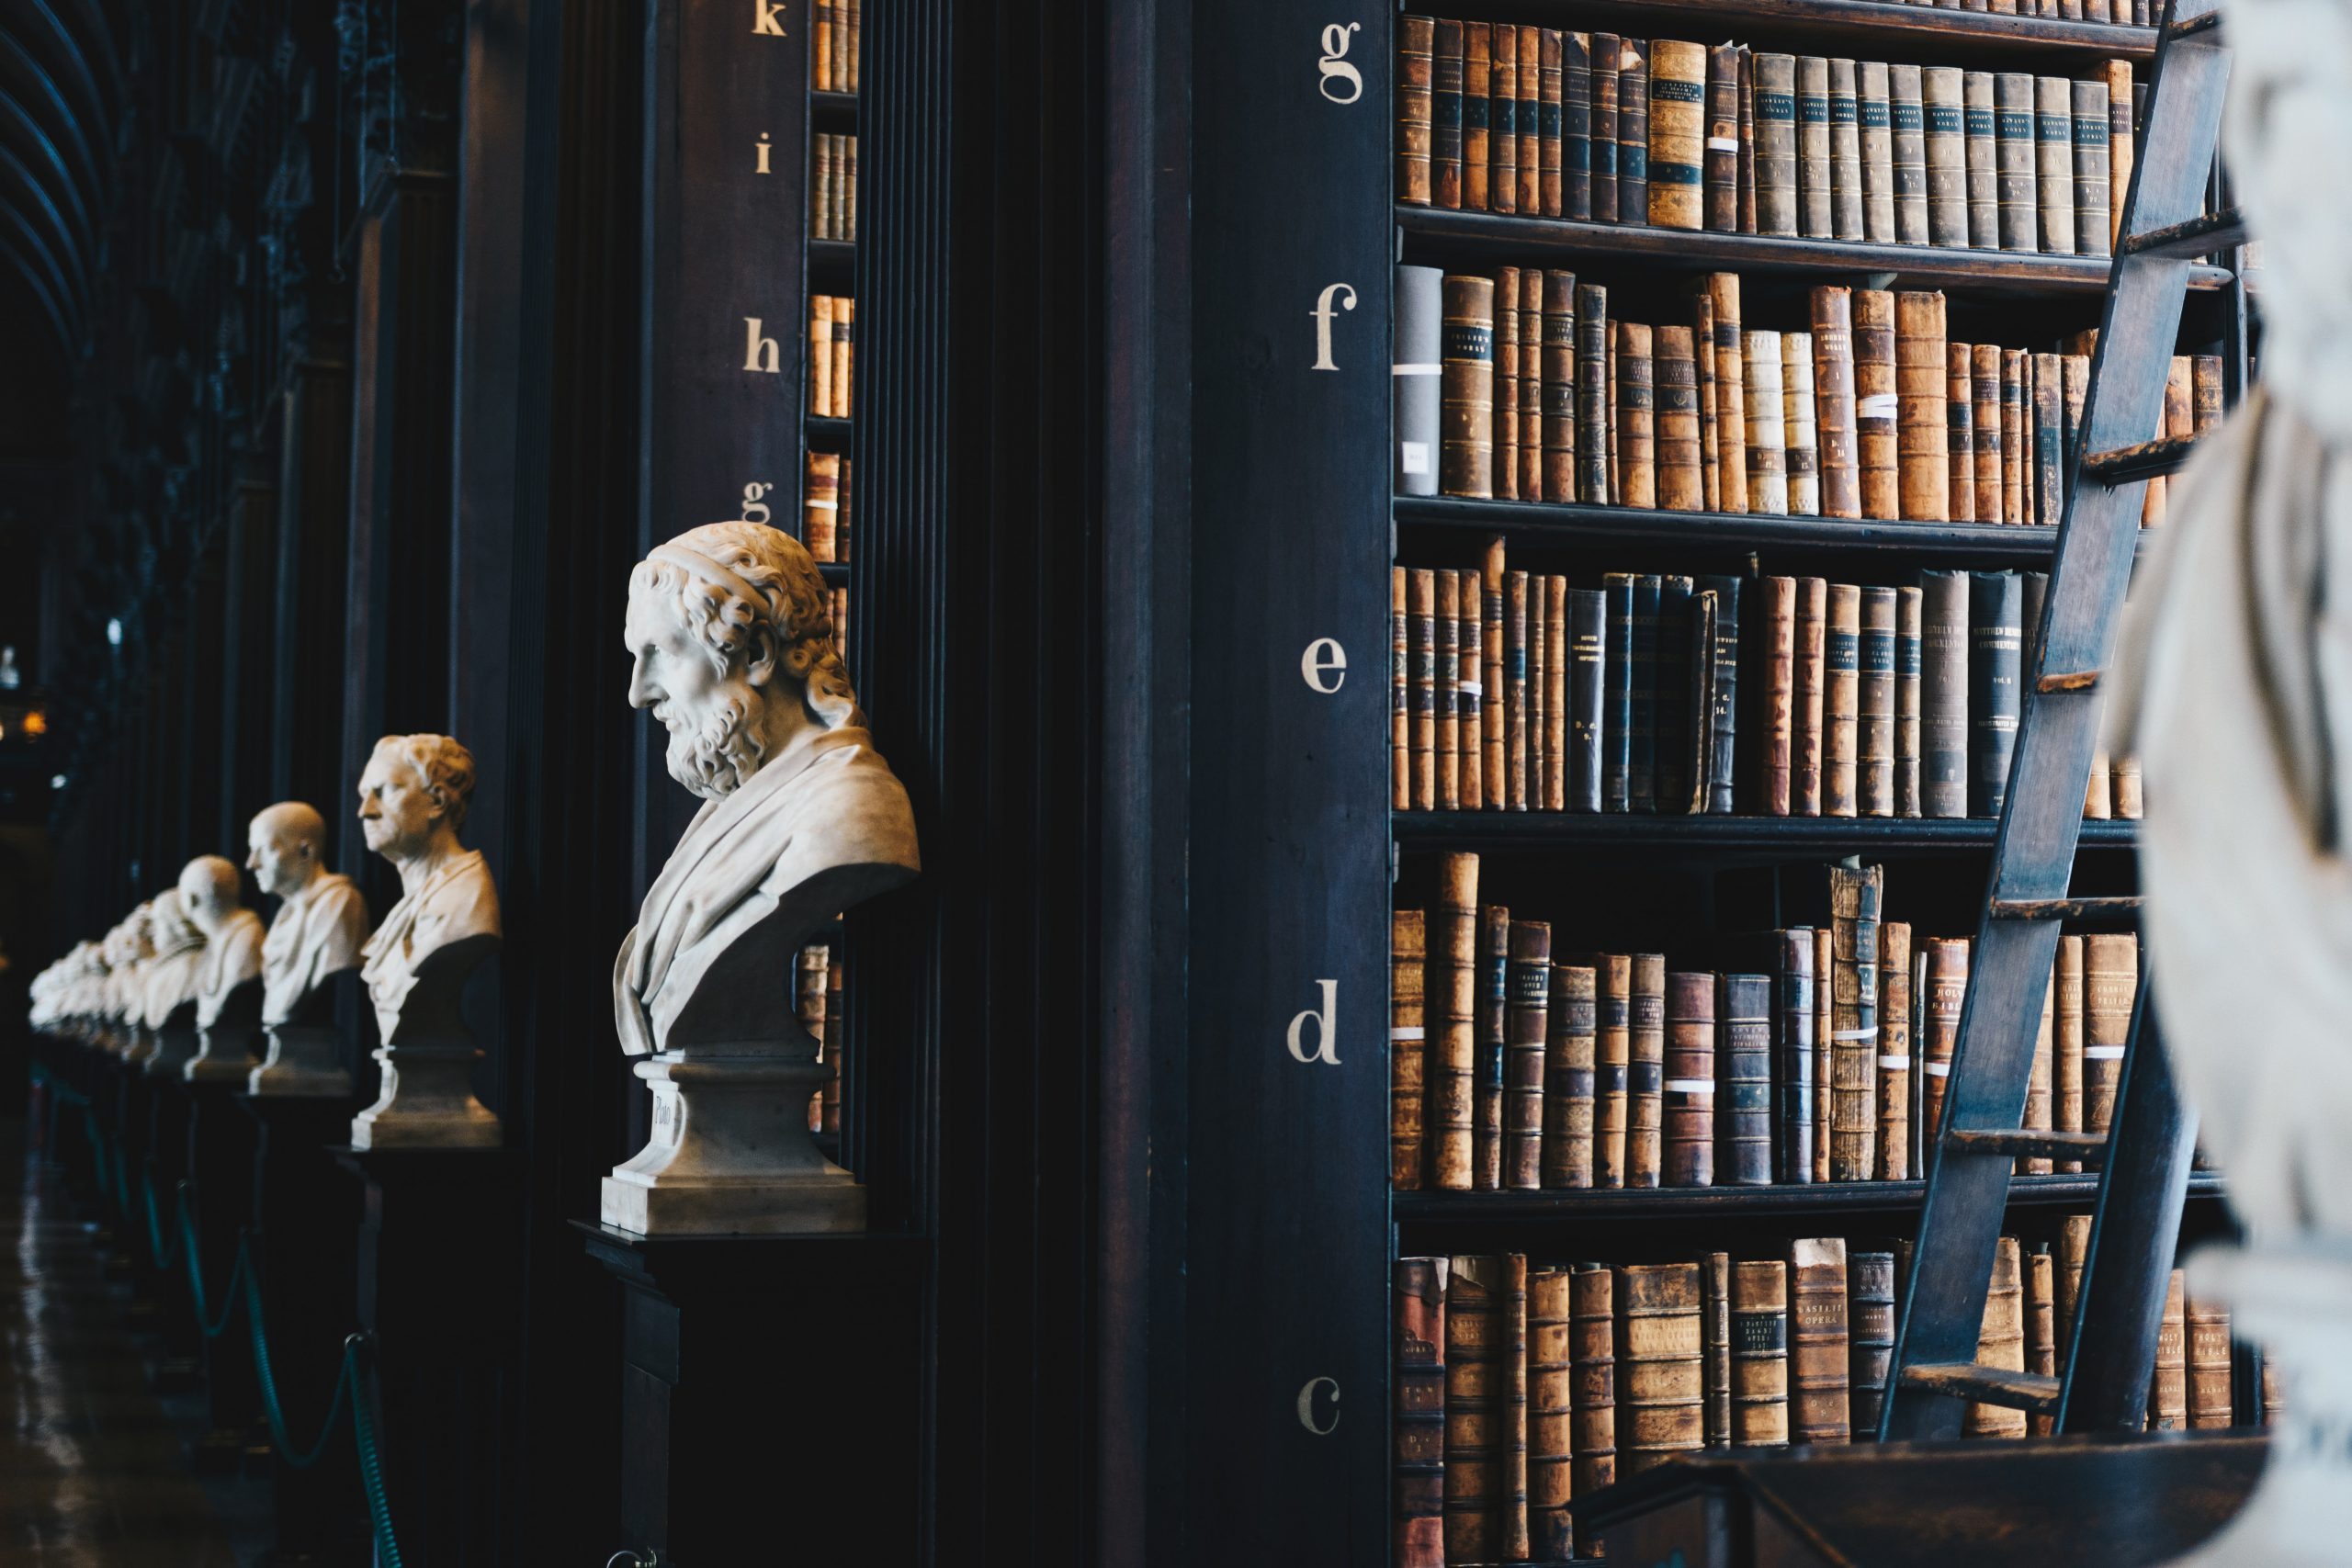 Library with books and head busts